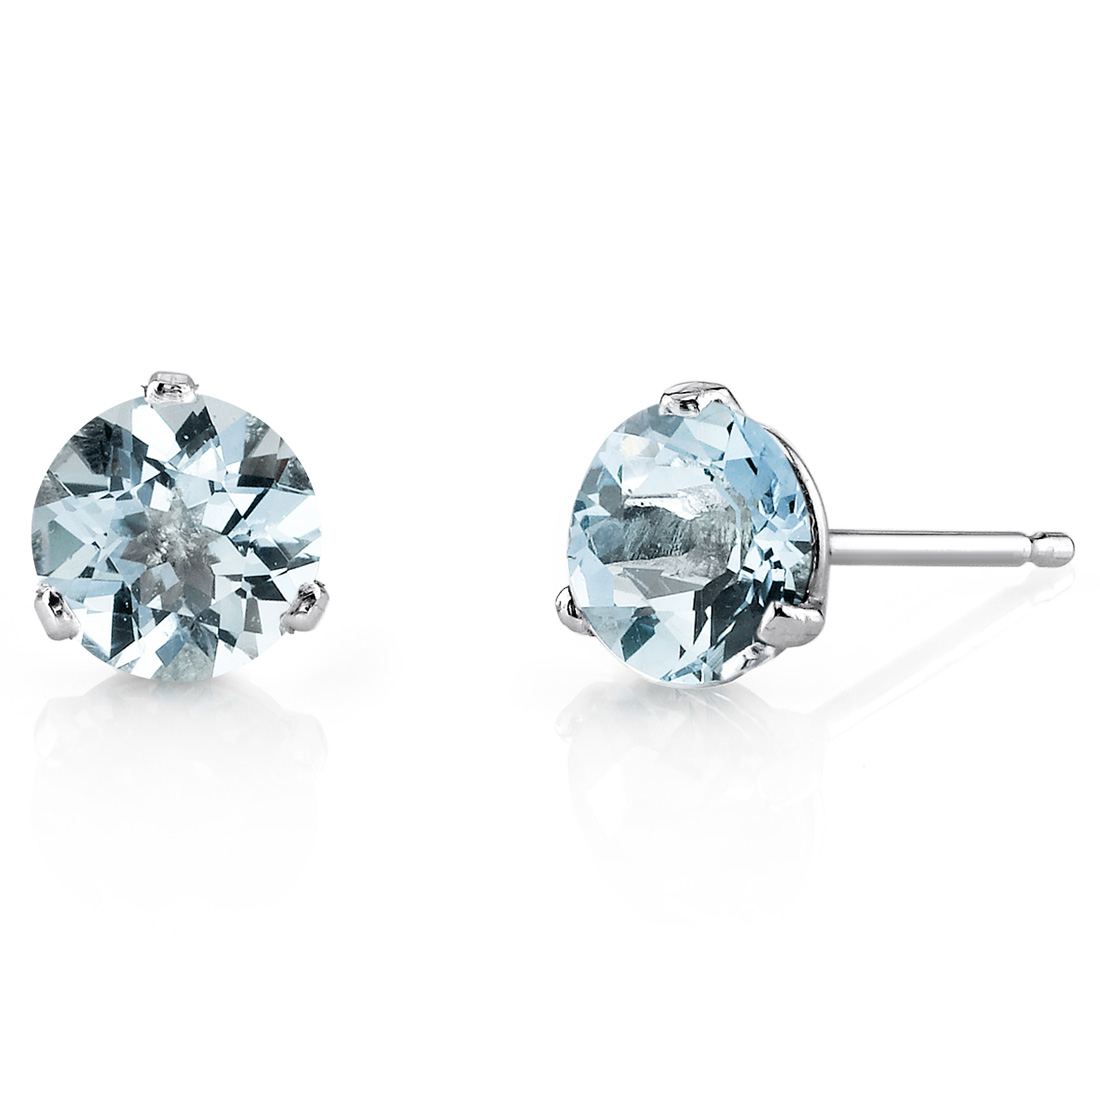 Peora 1.50 Ct T.G.W. Round-Cut Aquamarine 14K White Gold Stud Earrings